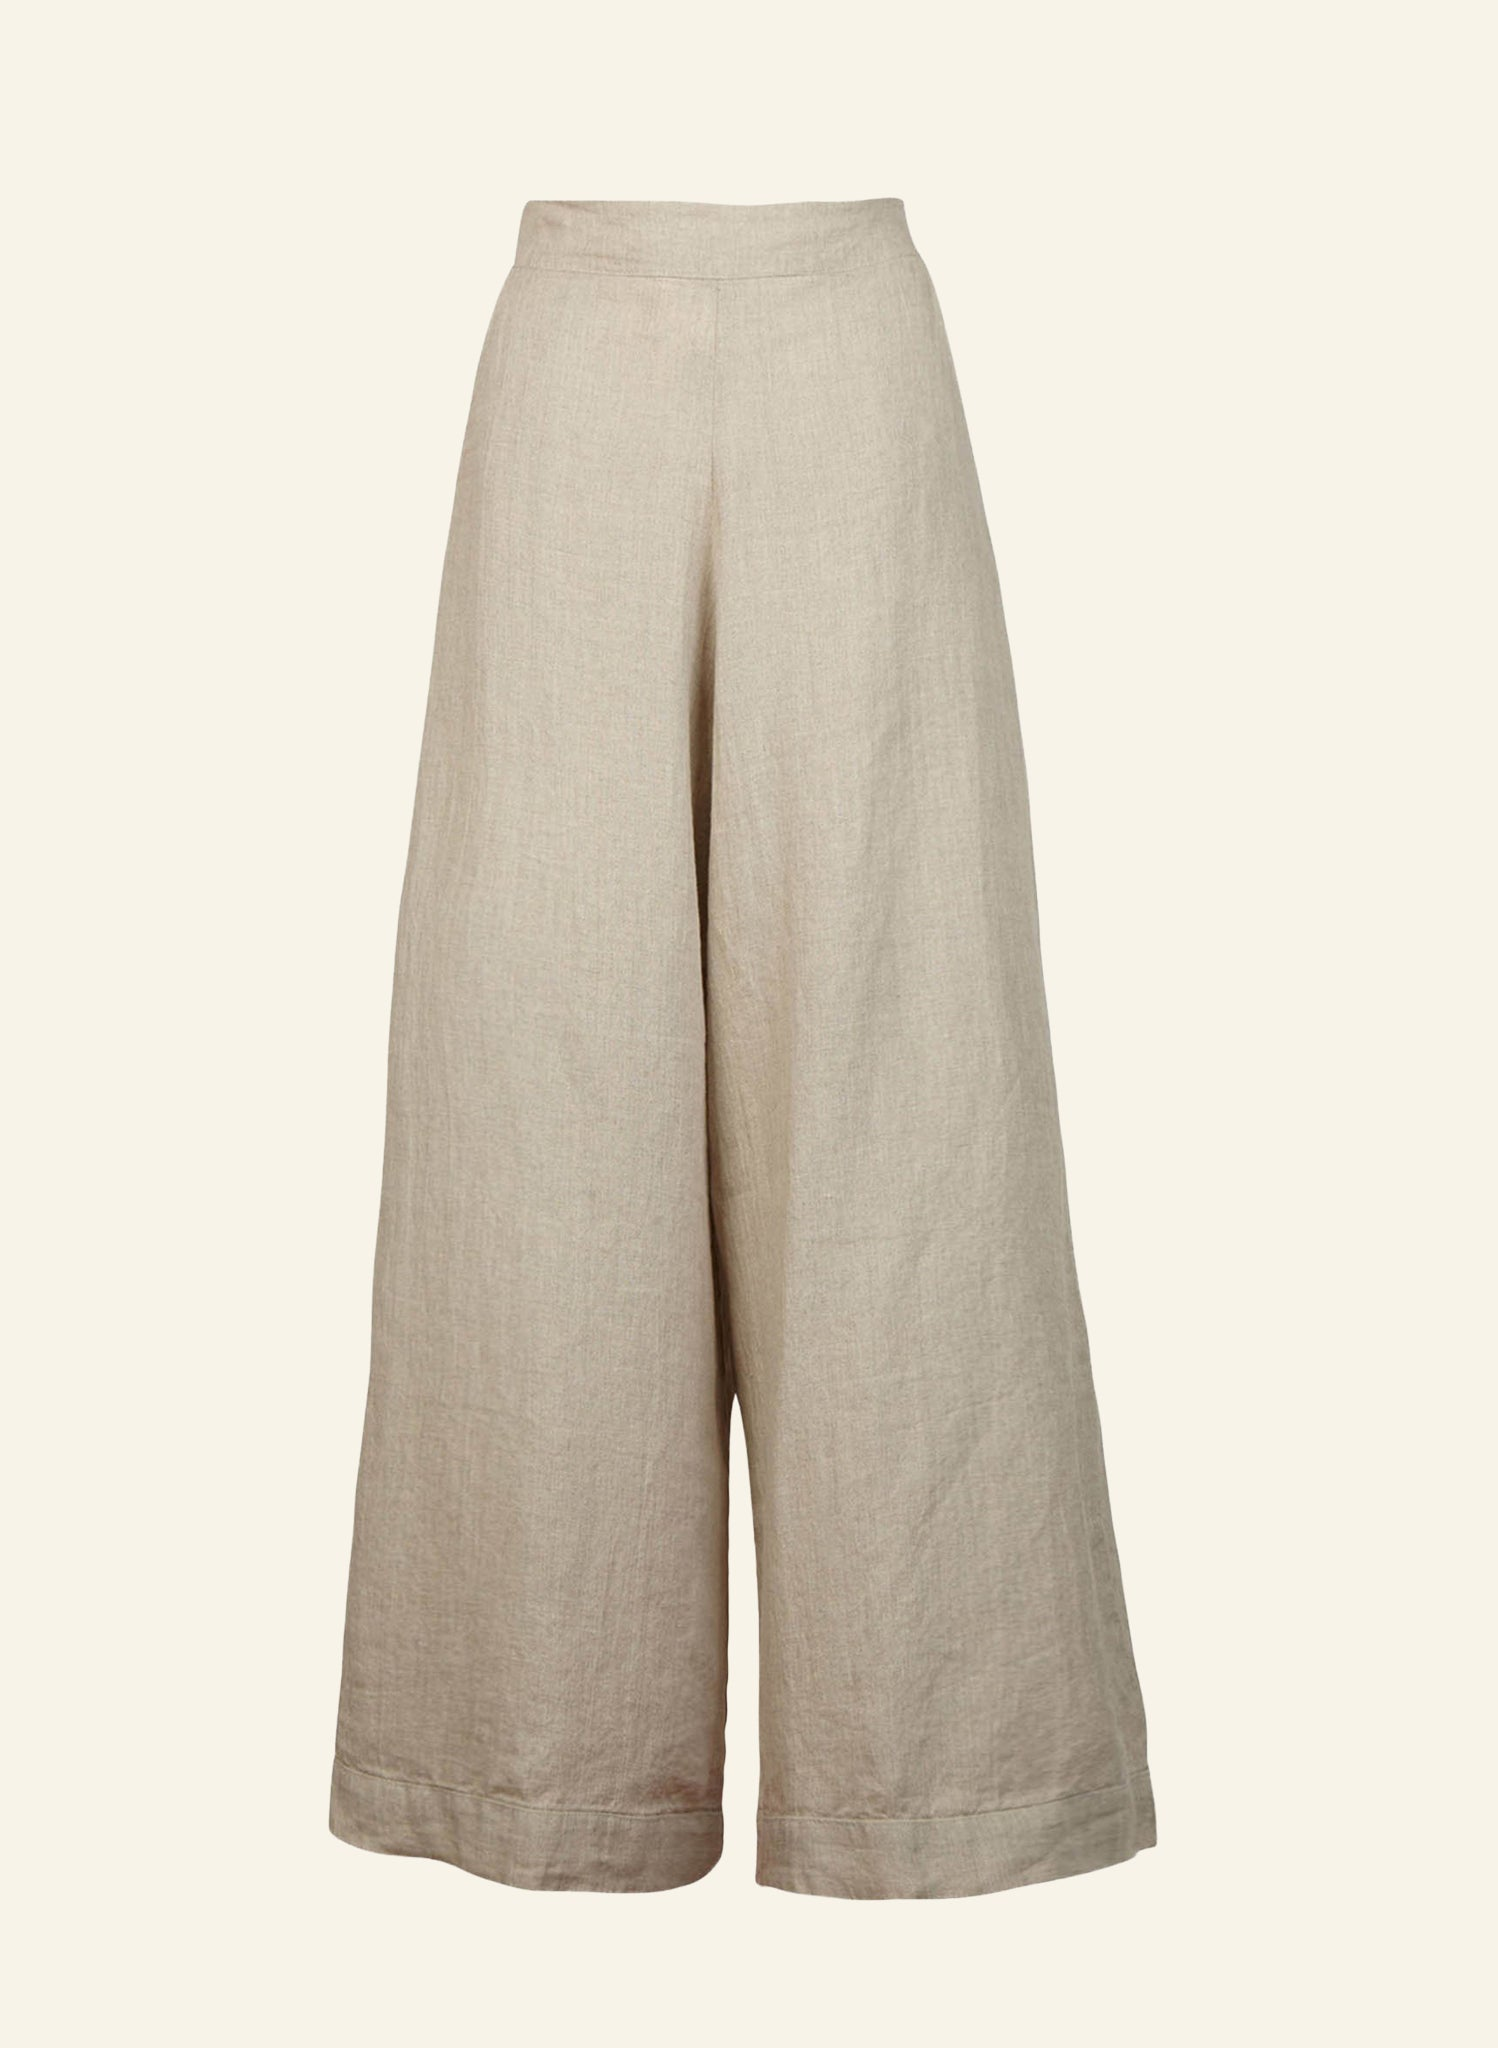 Josephine - Natural Linen Trousers